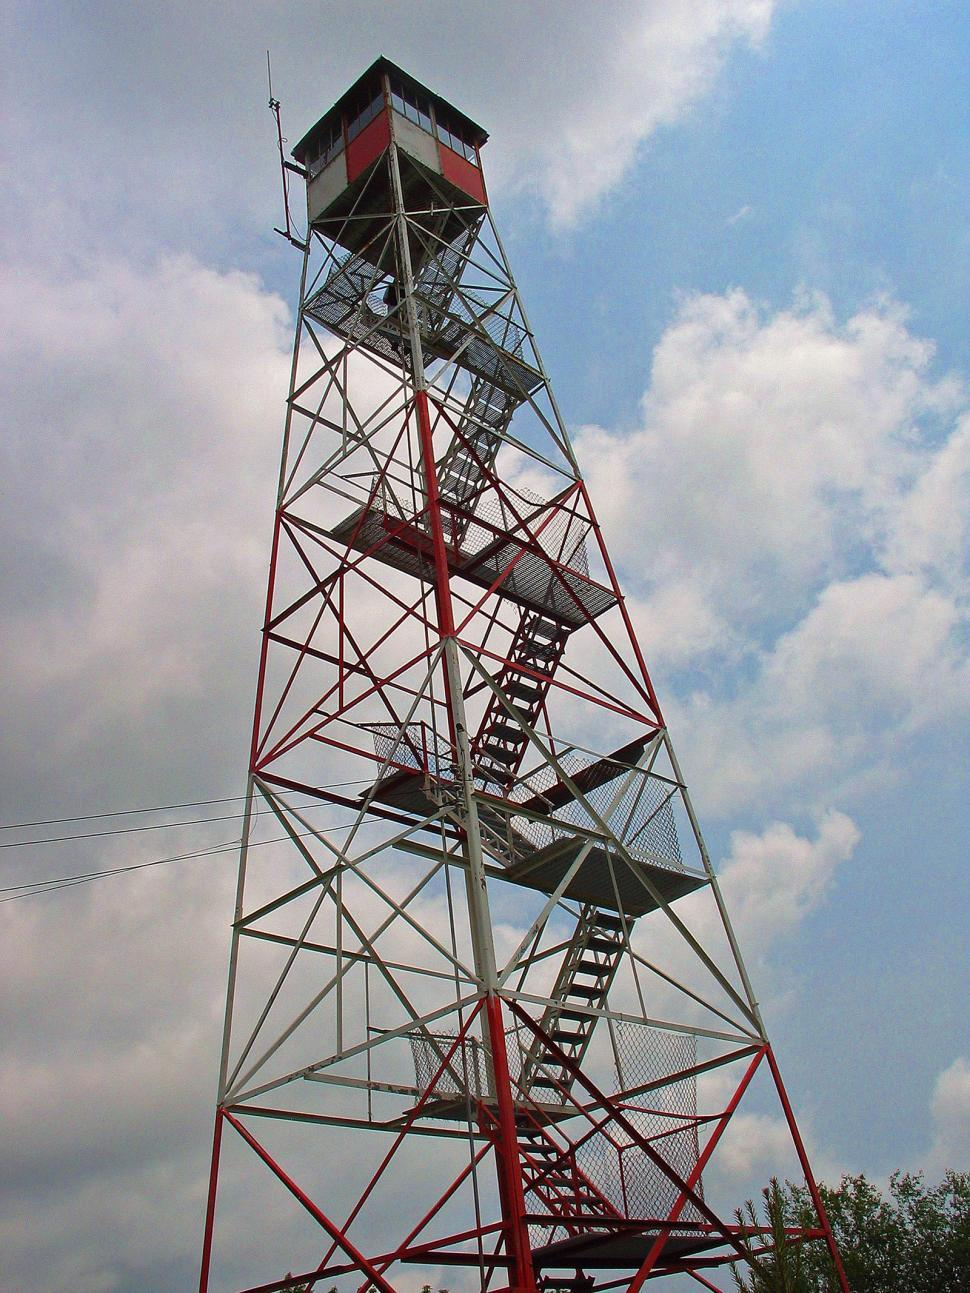 Download Free Stock Photo of Catfish Fire Tower